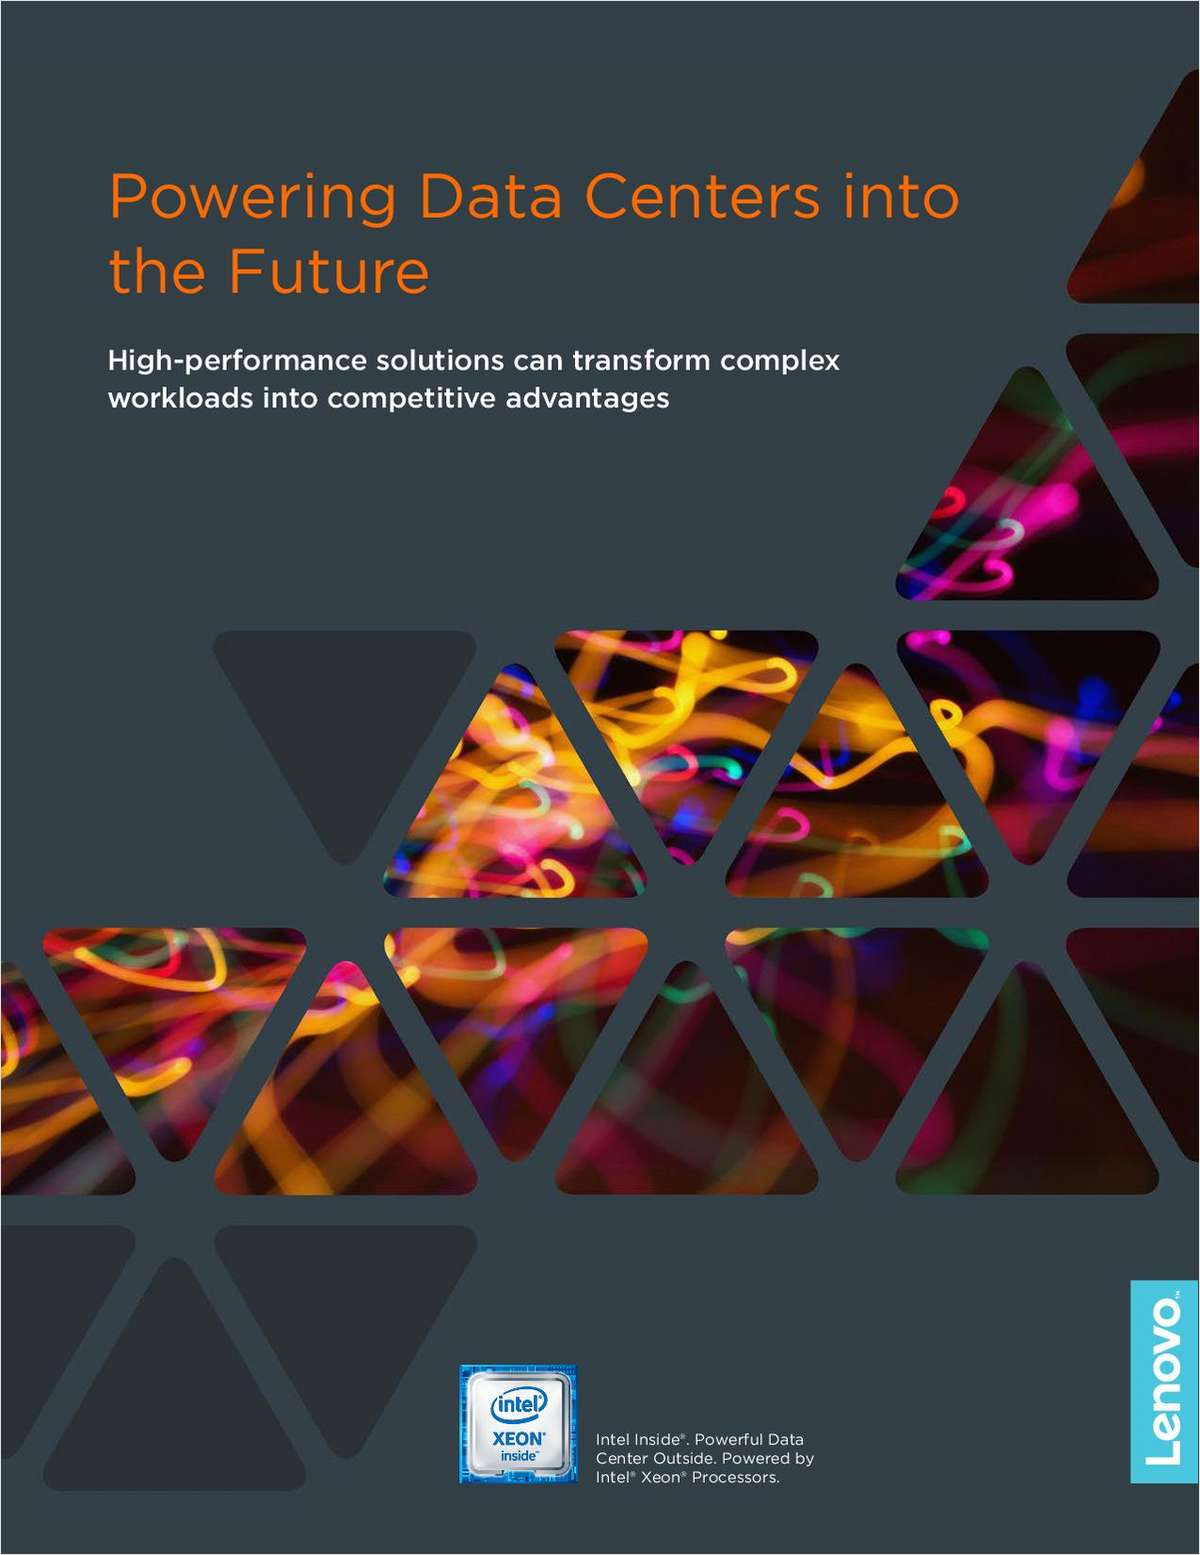 How to Power Your Data Center into the Future with HPC